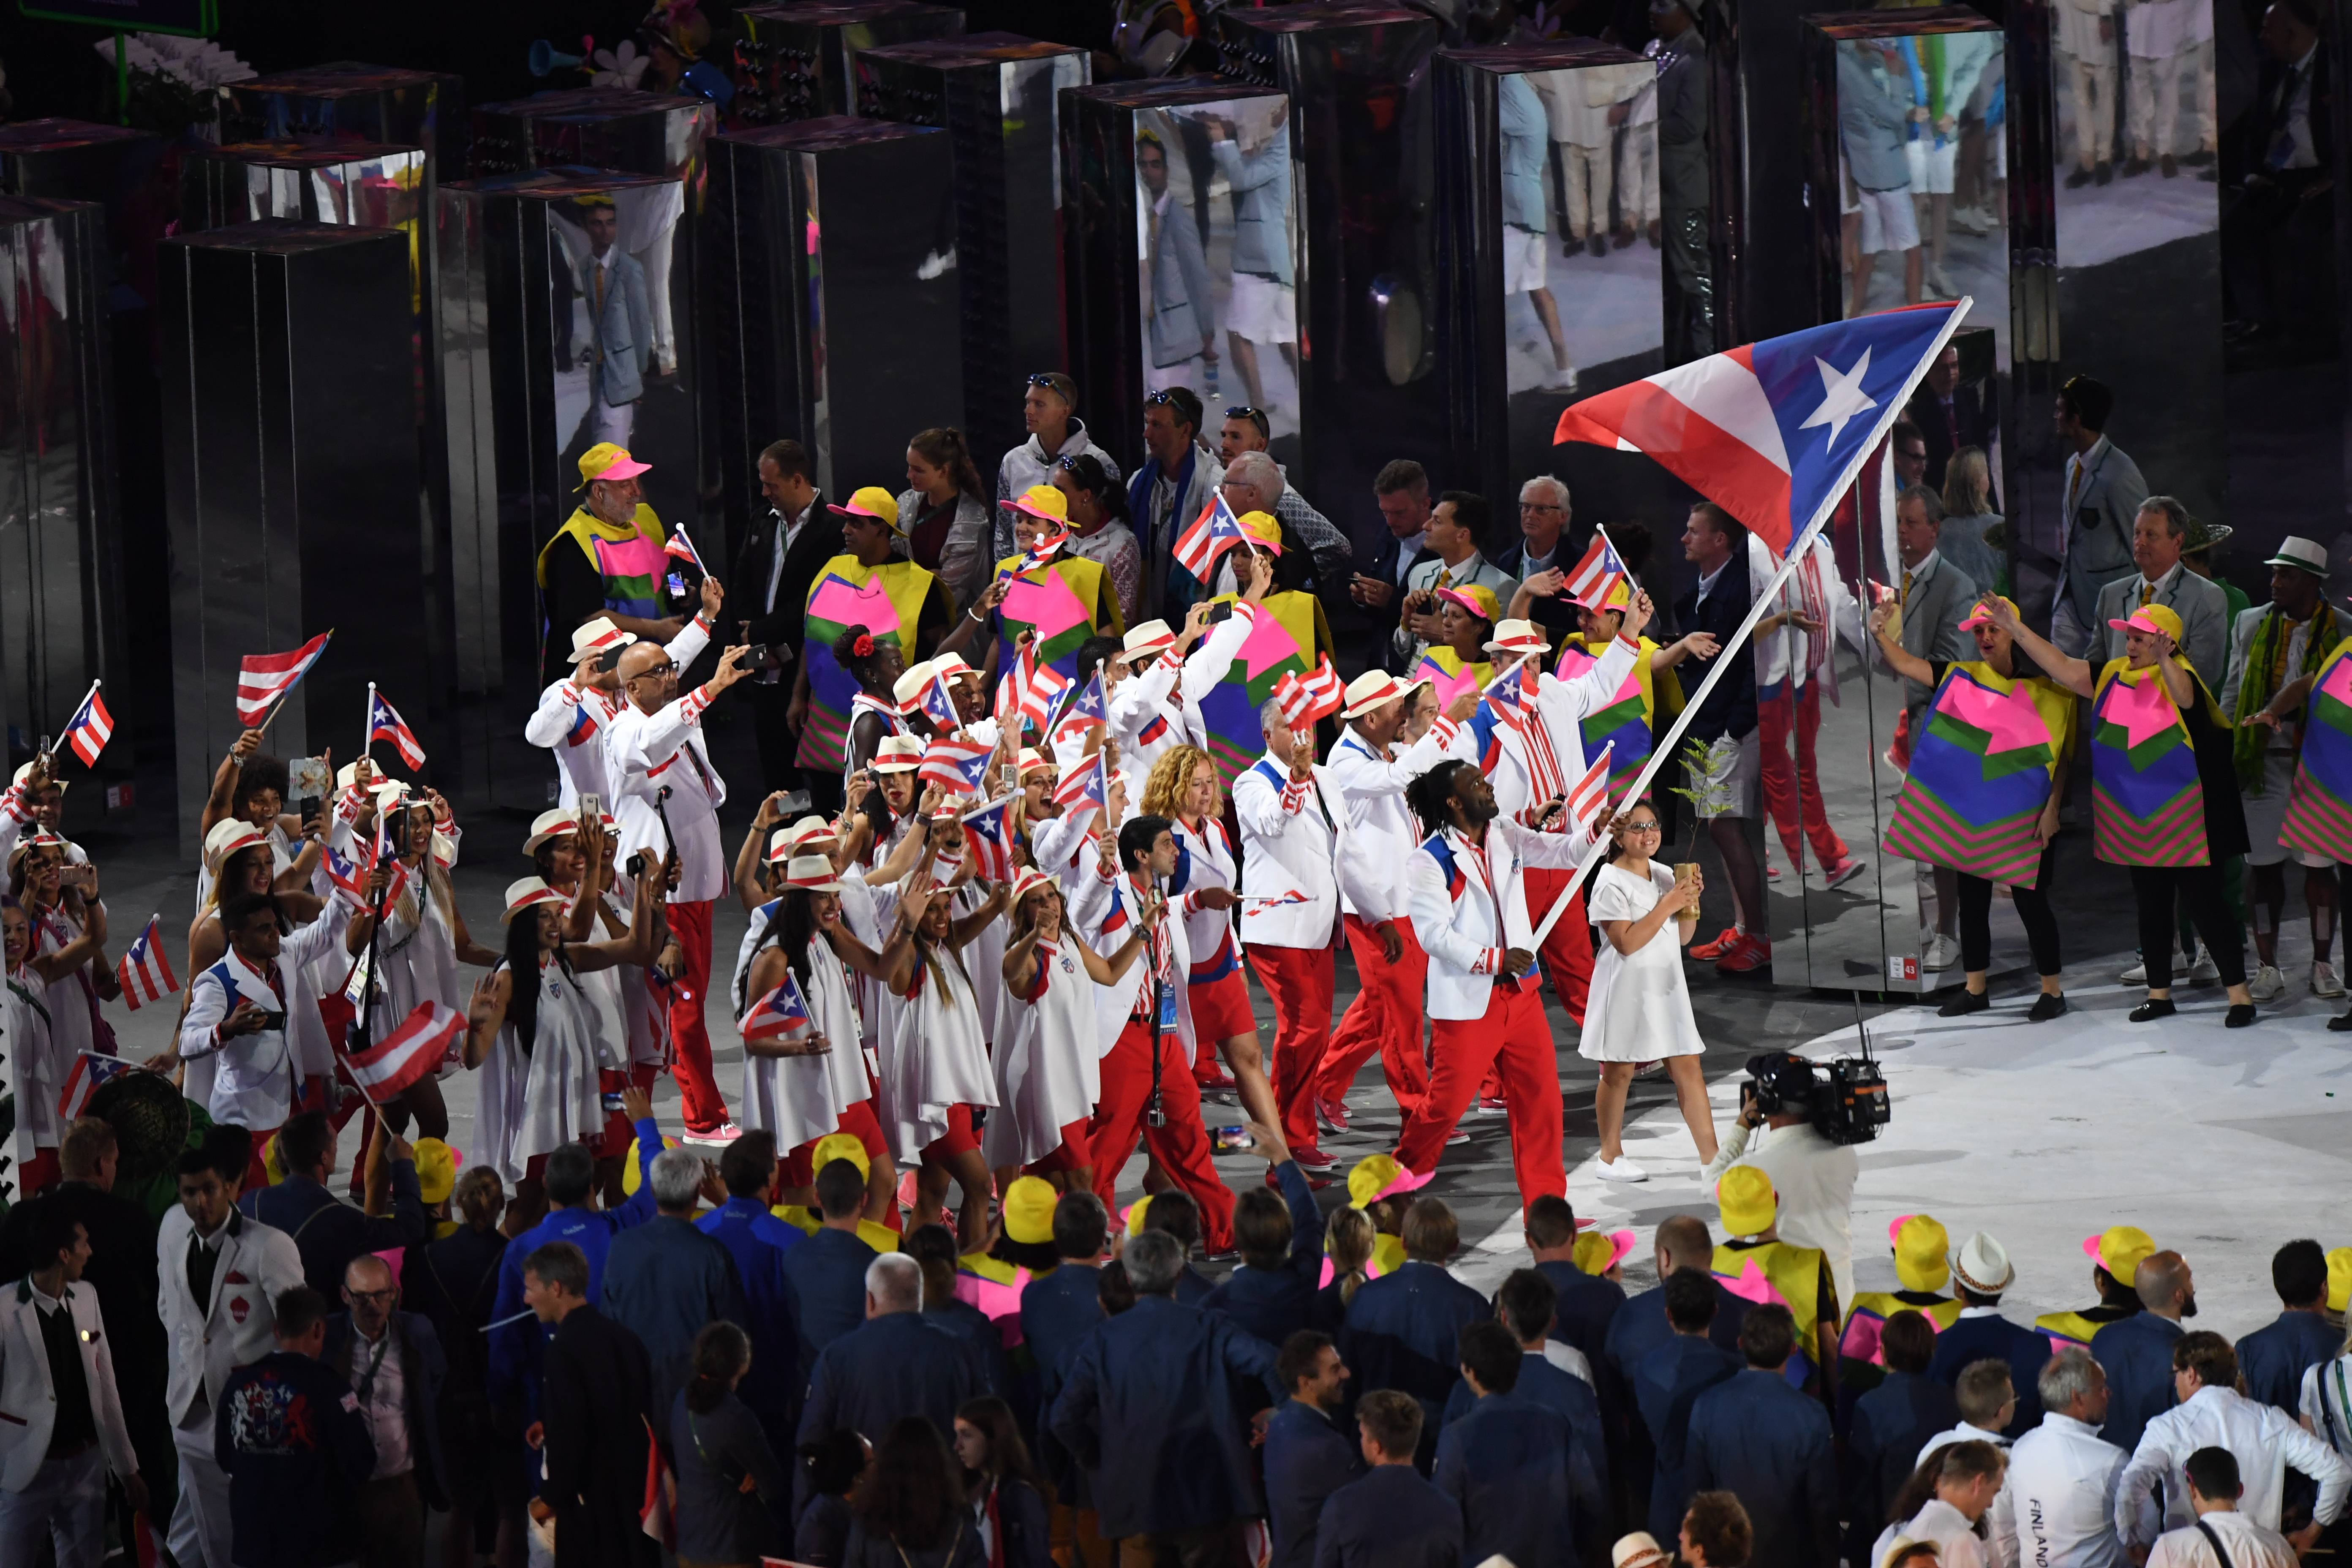 ascenefromtherio2016olympicgamesopeningceremony28543802690-eb51c6c05852e106f63a7964bf1b684b.jpg